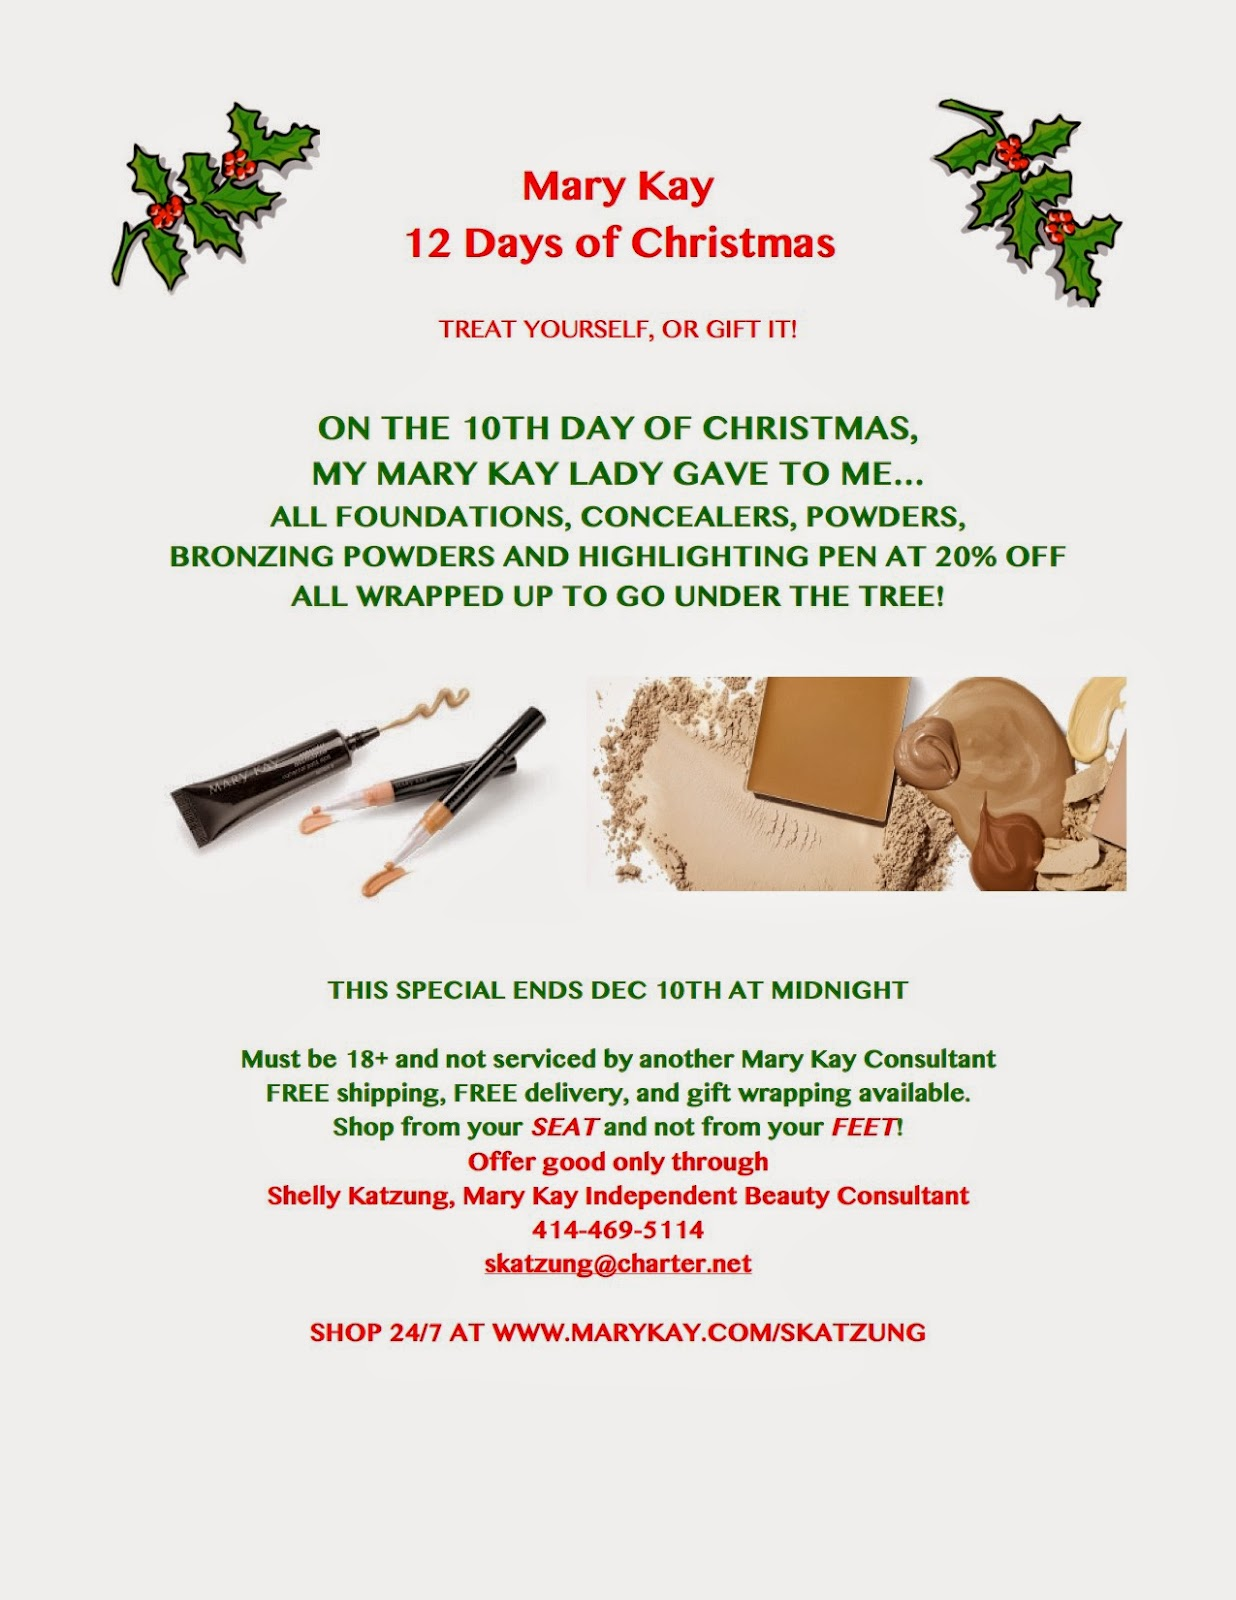 Mary Kay Christmas Images.Now You Re Chalking Mary Kay 12 Days Of Christmas Sale Day 10